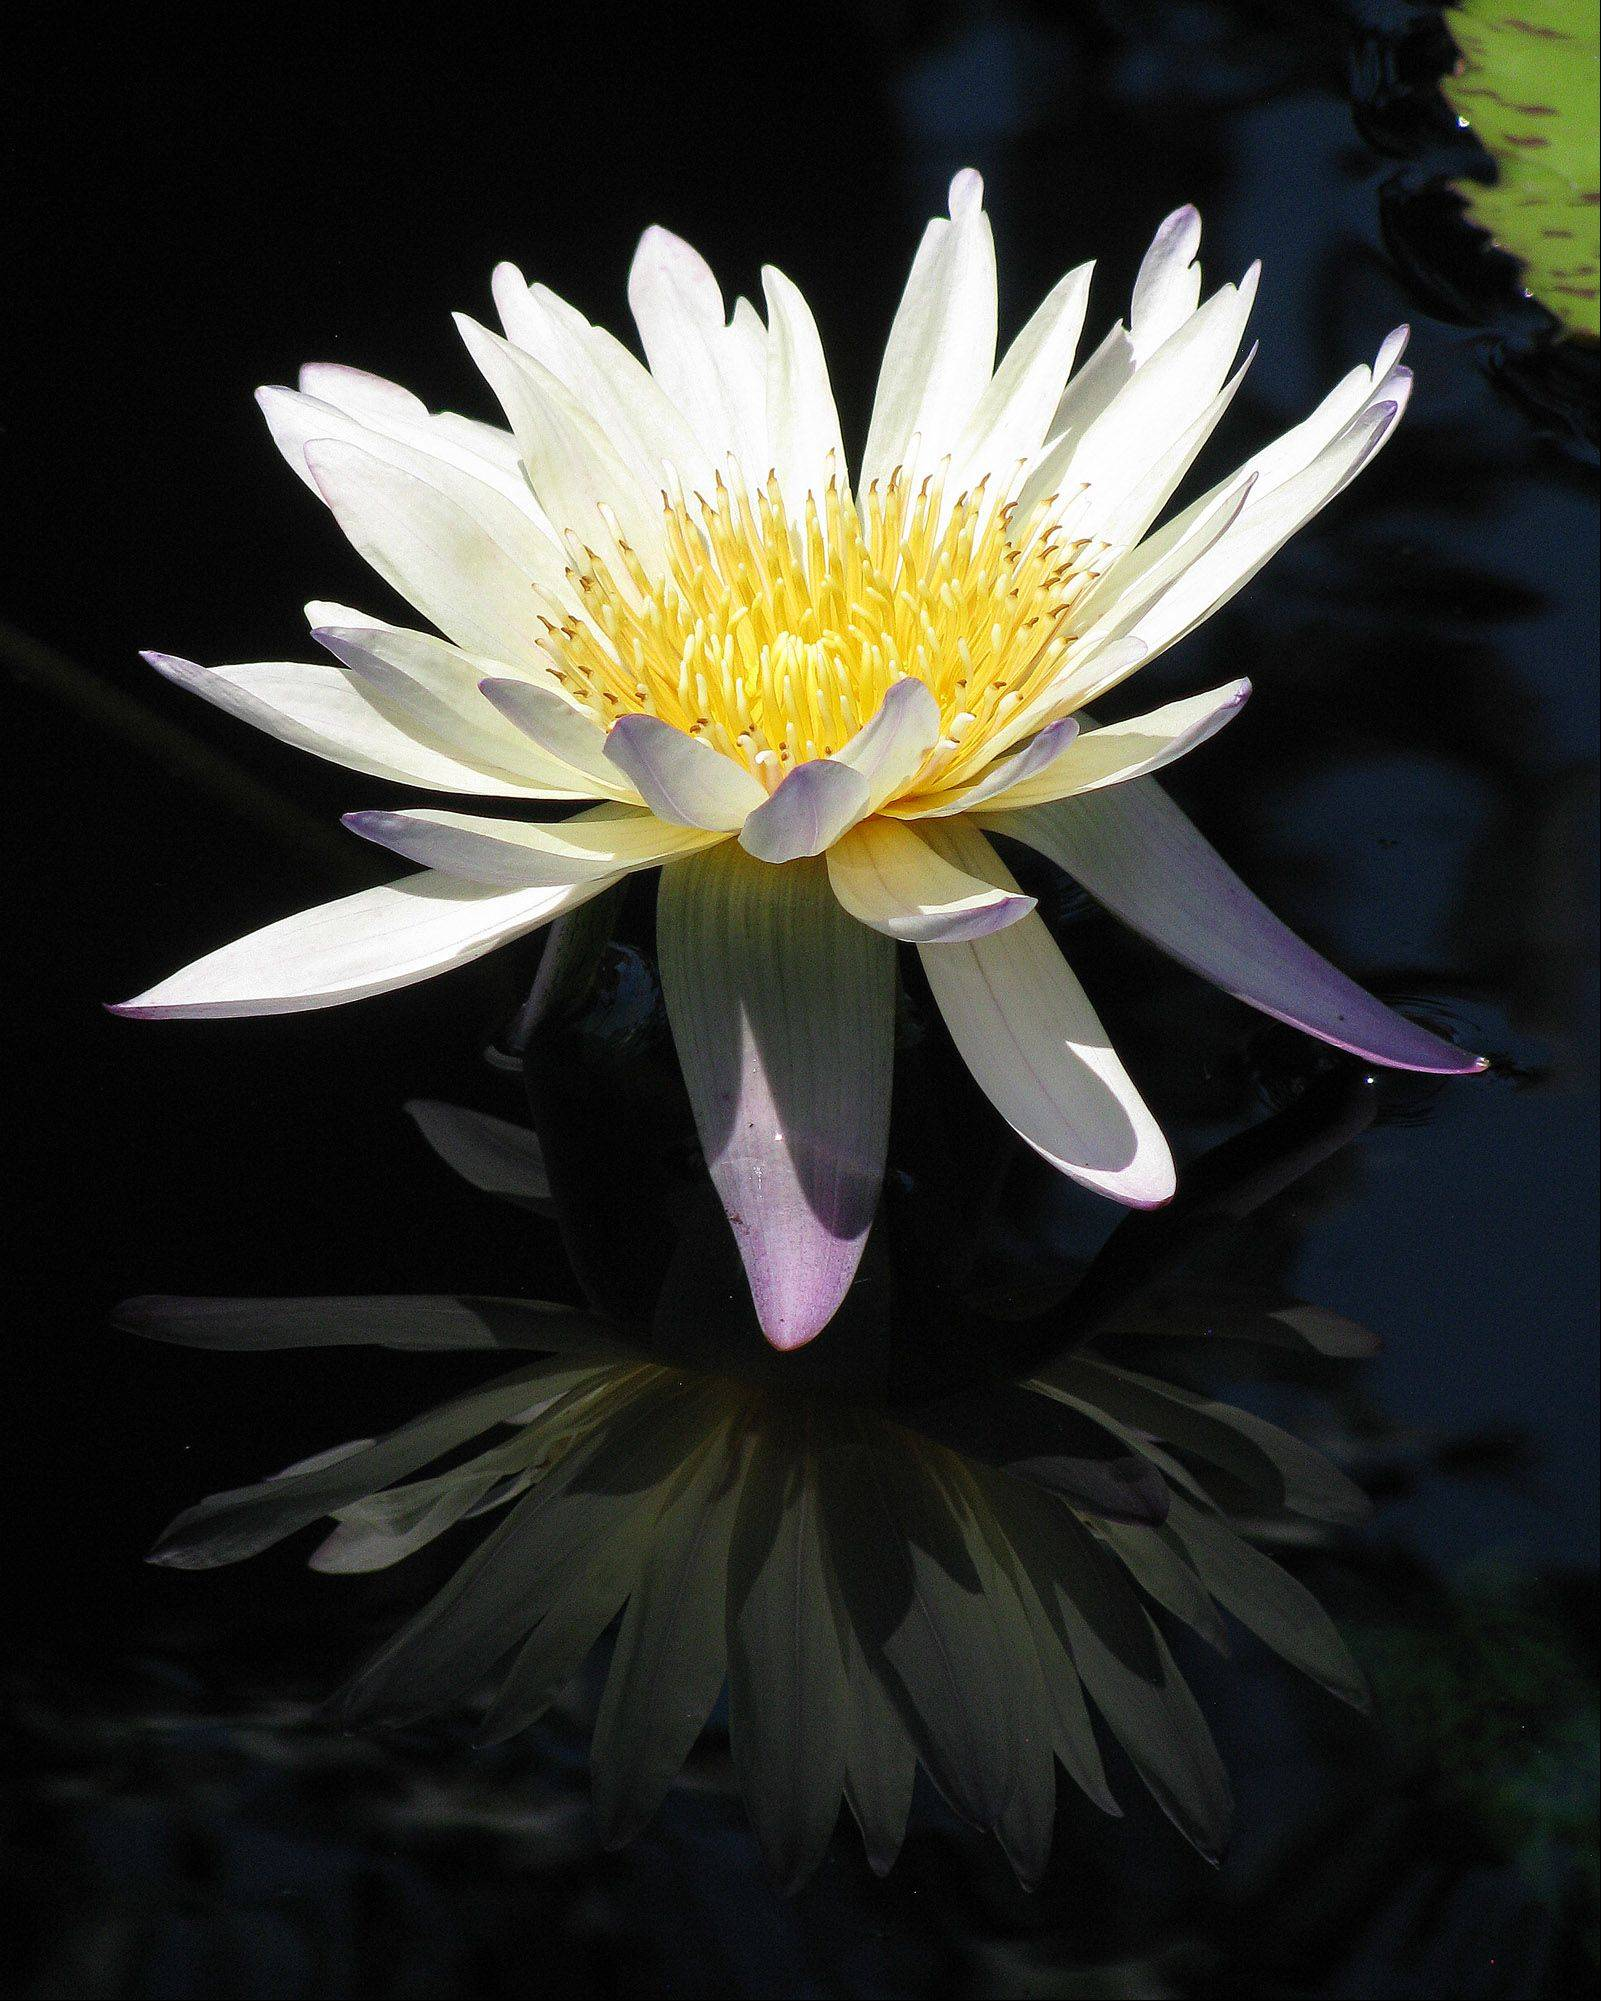 I photographed this lotus flower and it�s reflection at the Chicago Botanic Gardens.